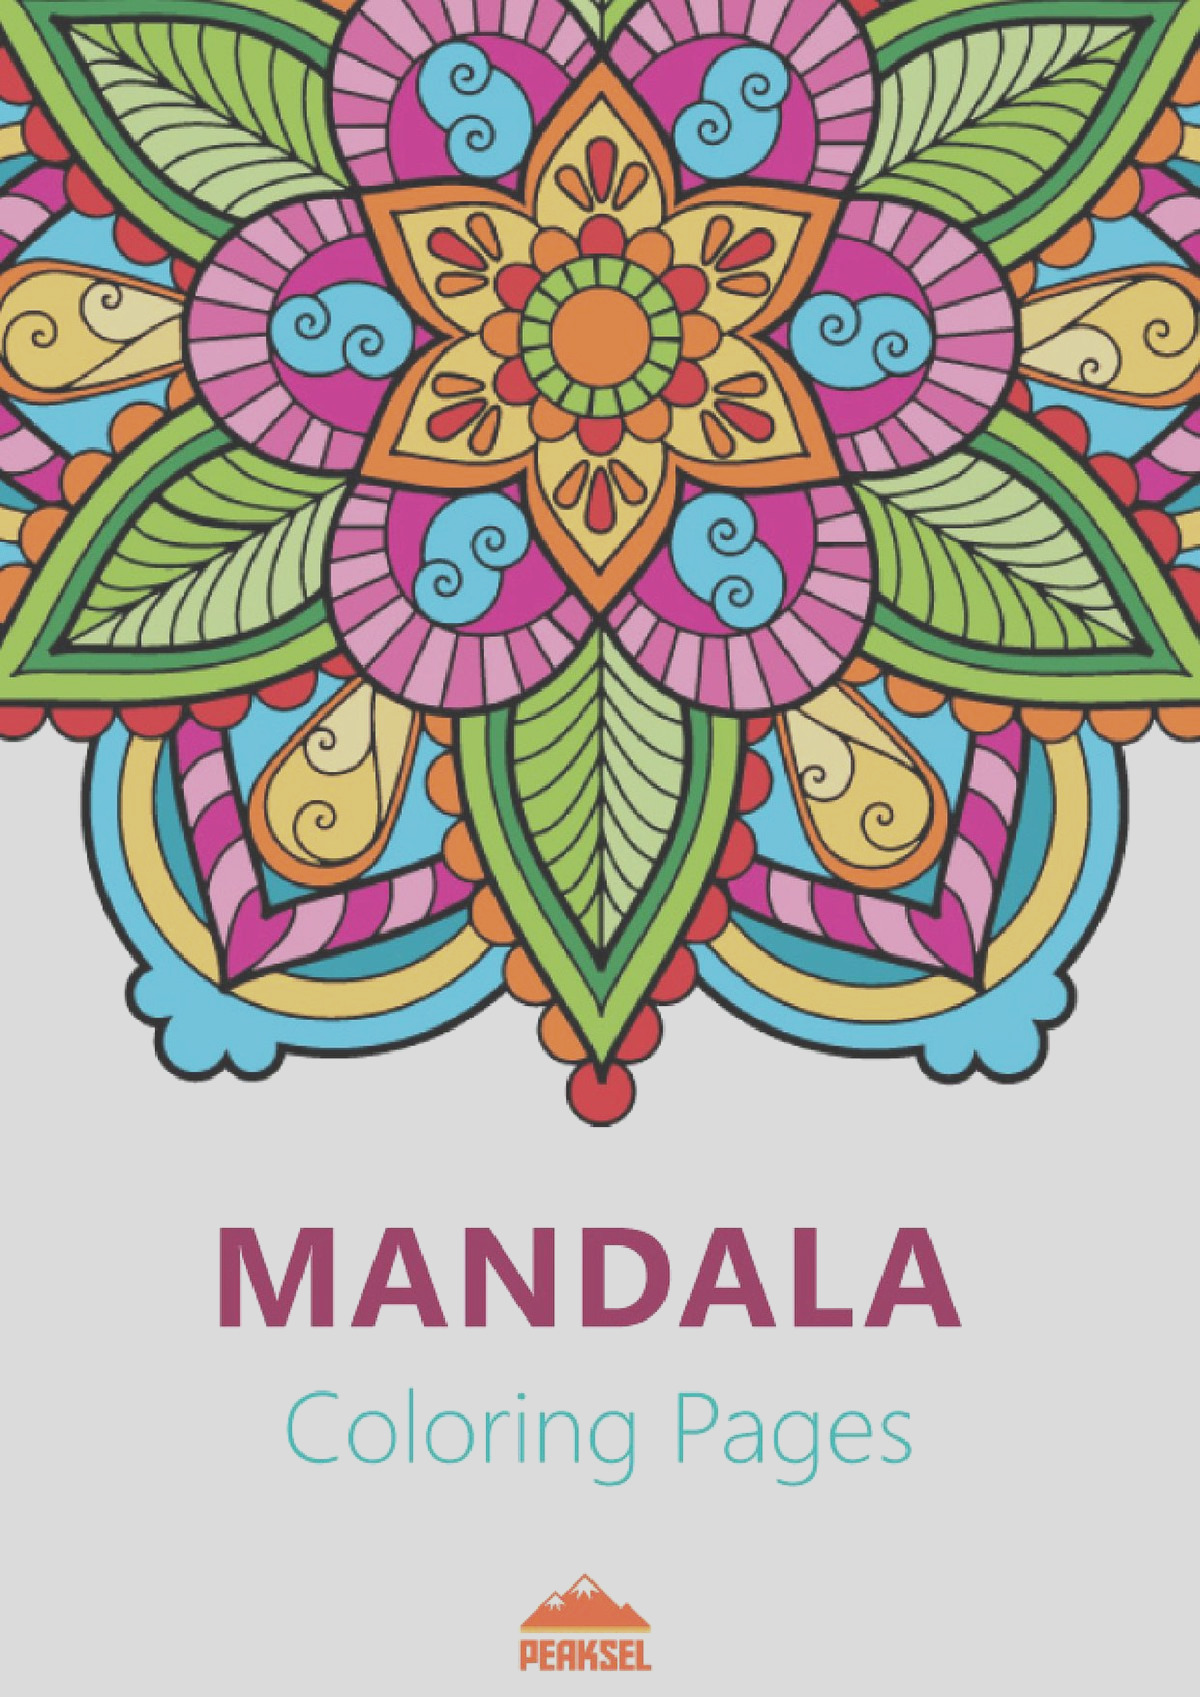 File Mandala Coloring Pages for Adults Printable Coloring Book pdf